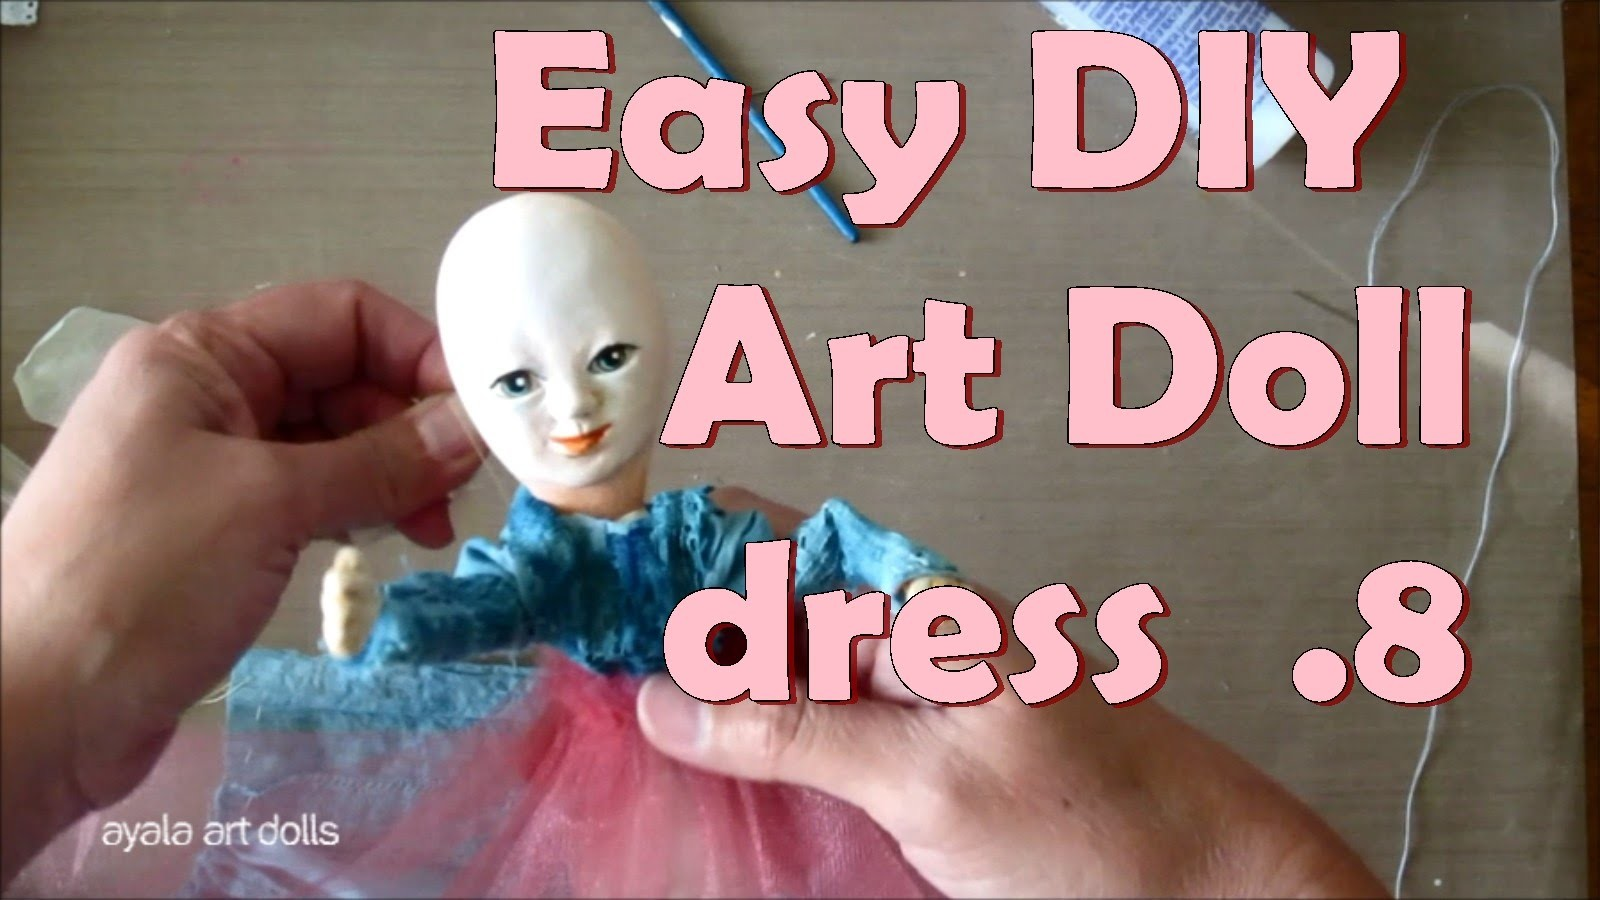 Easy DIY Art Doll dress. How to make a doll dress. Fairy Queen 08